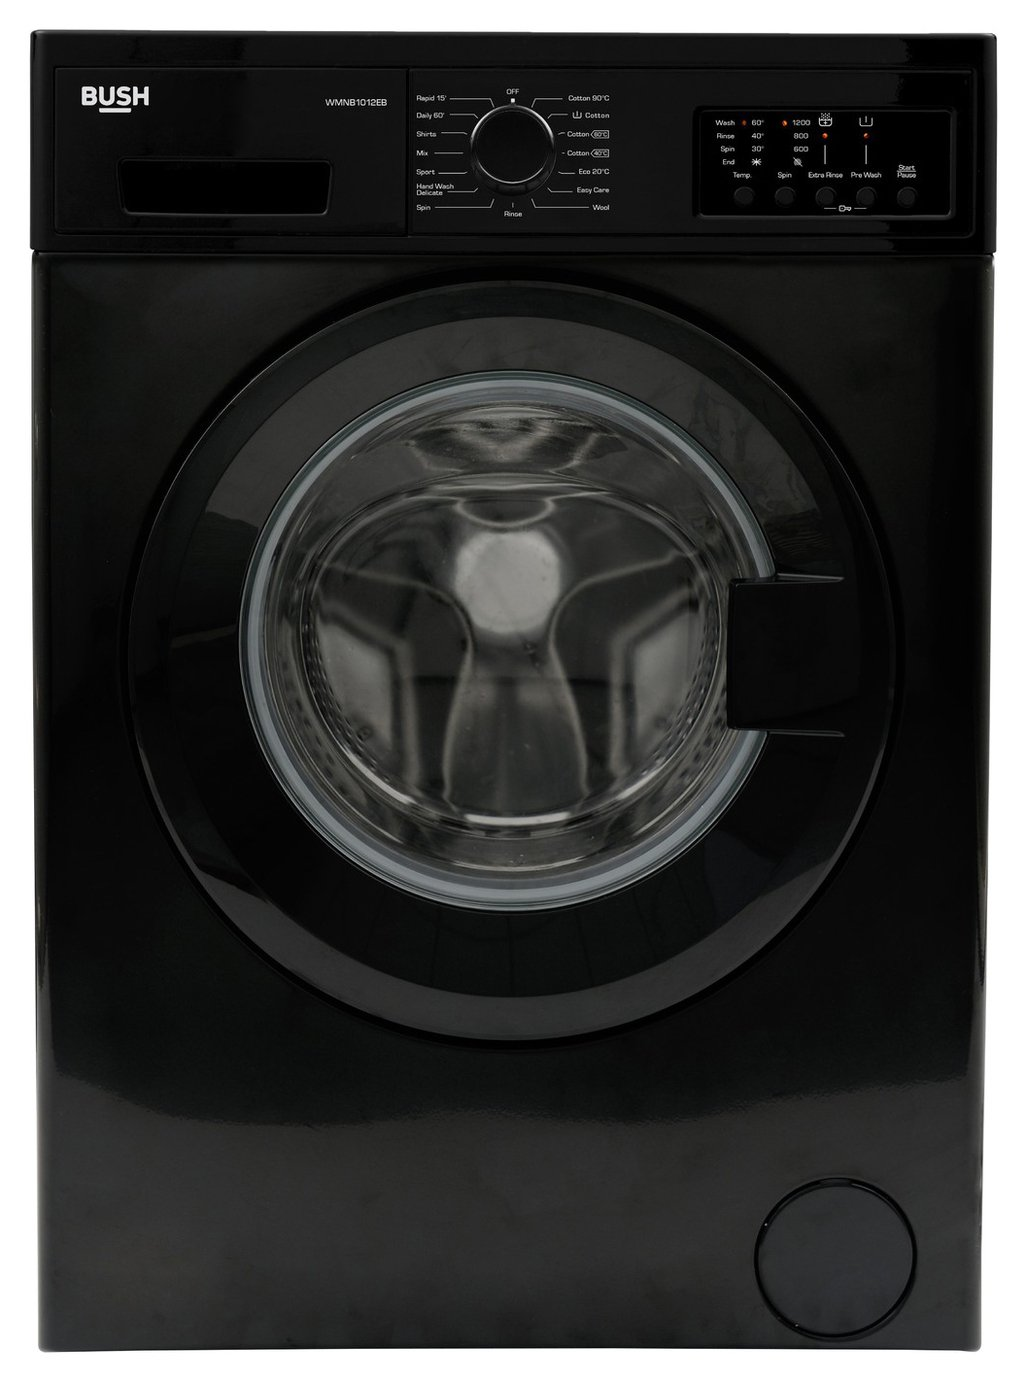 Bush WMNB1012EB 10KG 1200 Spin Washing Machine - Black Best Price, Cheapest Prices